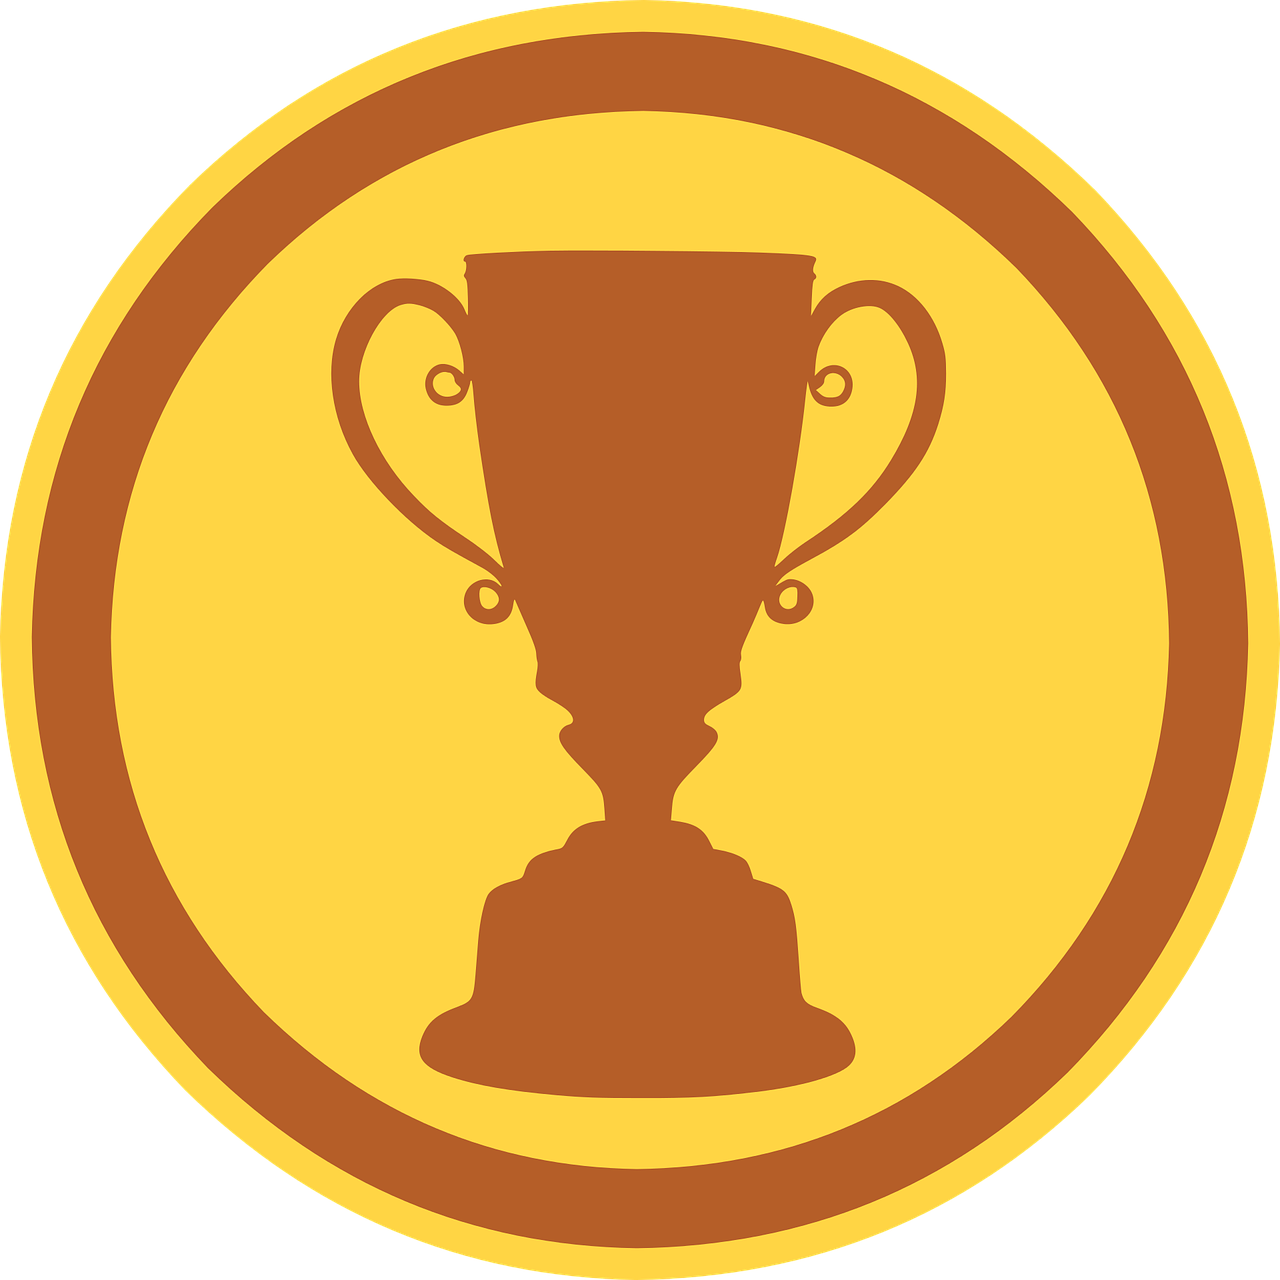 Update : A Badge From Coursemarks.com